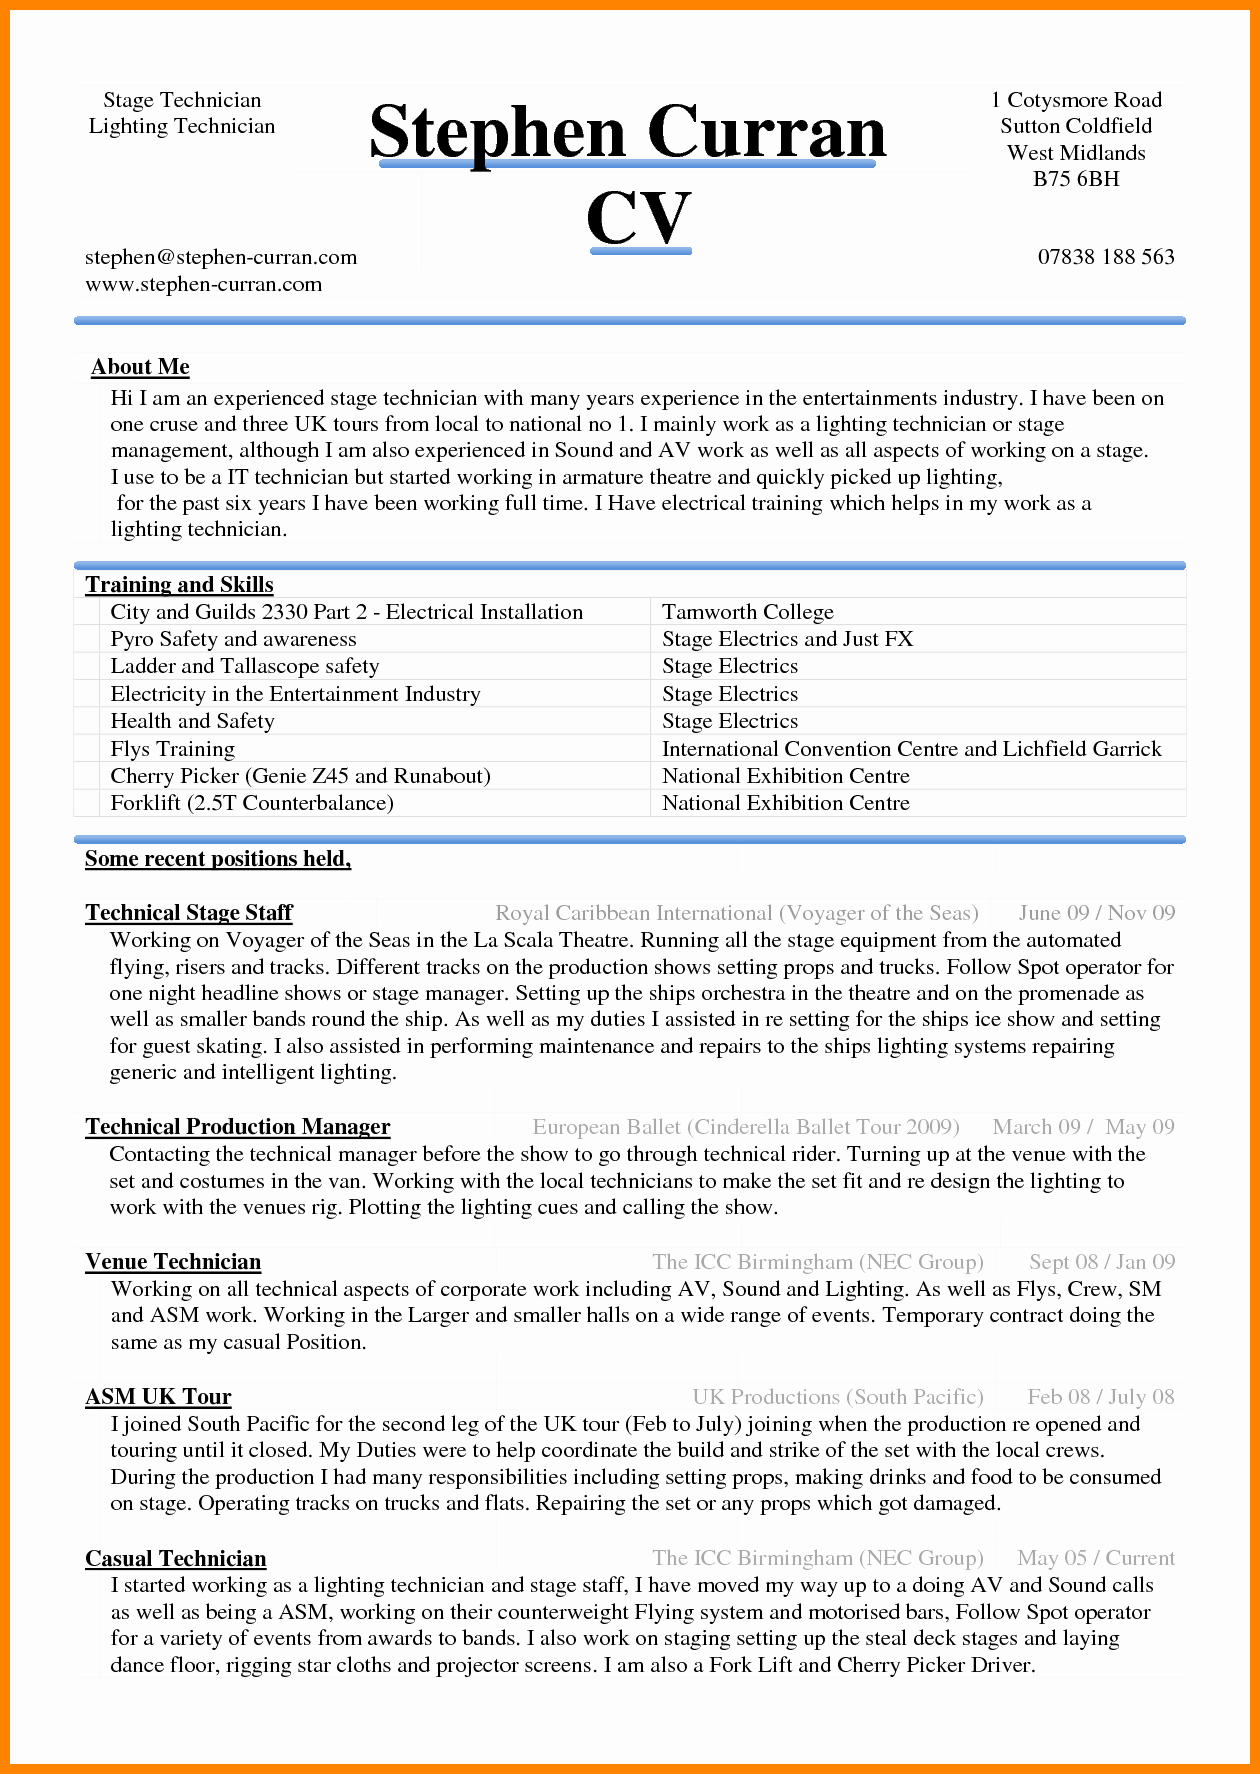 Resume format In Ms Word New 6 Curriculum Vitae In Ms Word